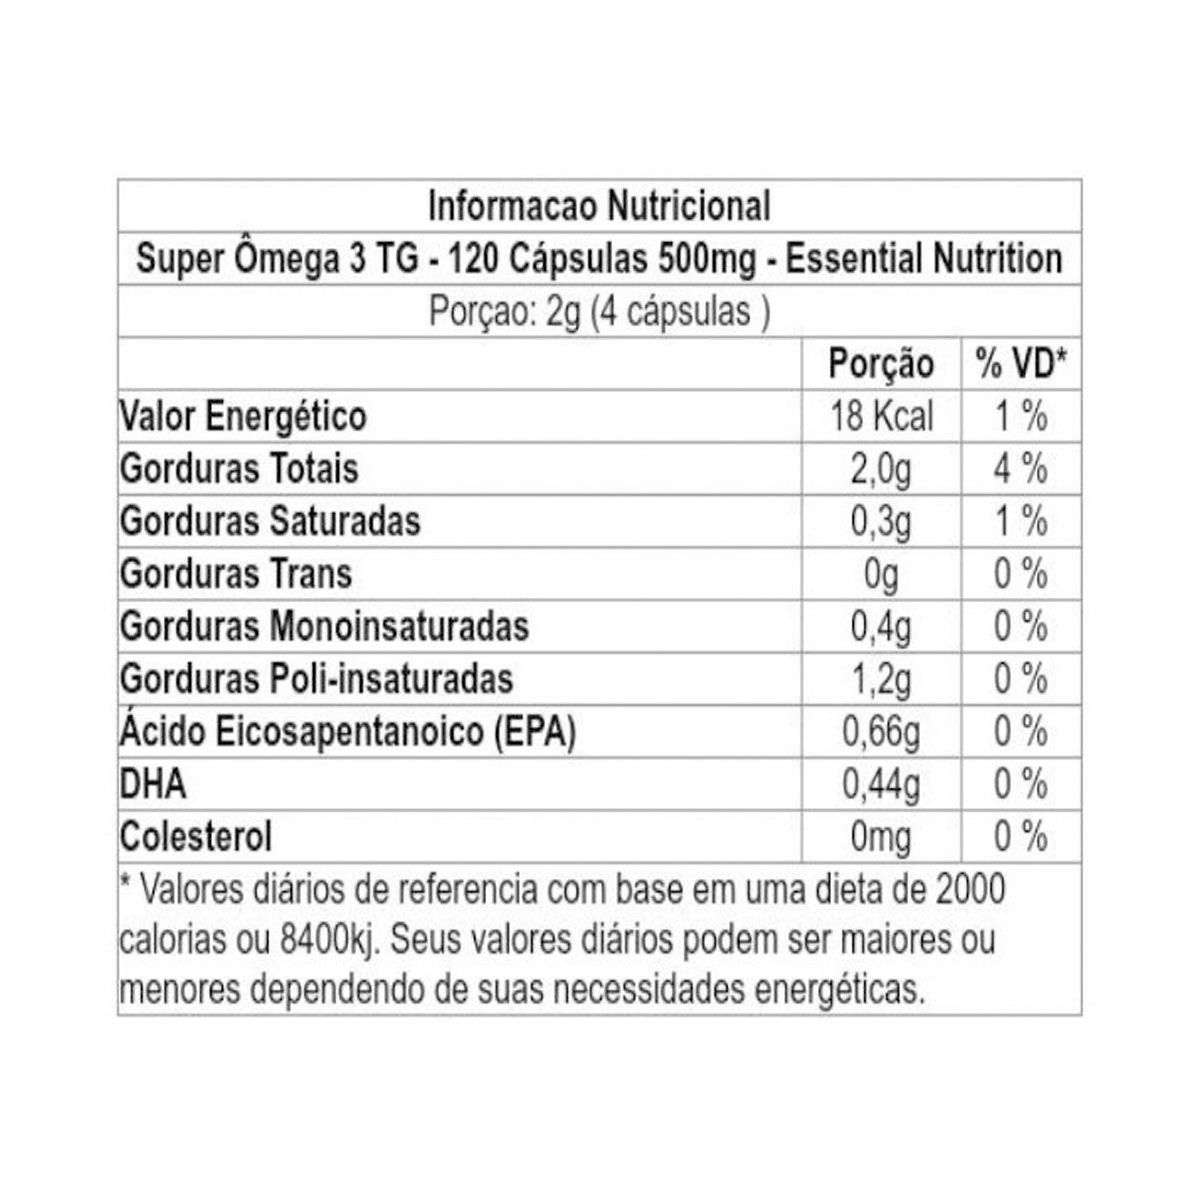 Super Omega 3 500mg 120 caps - Essential Nutrition